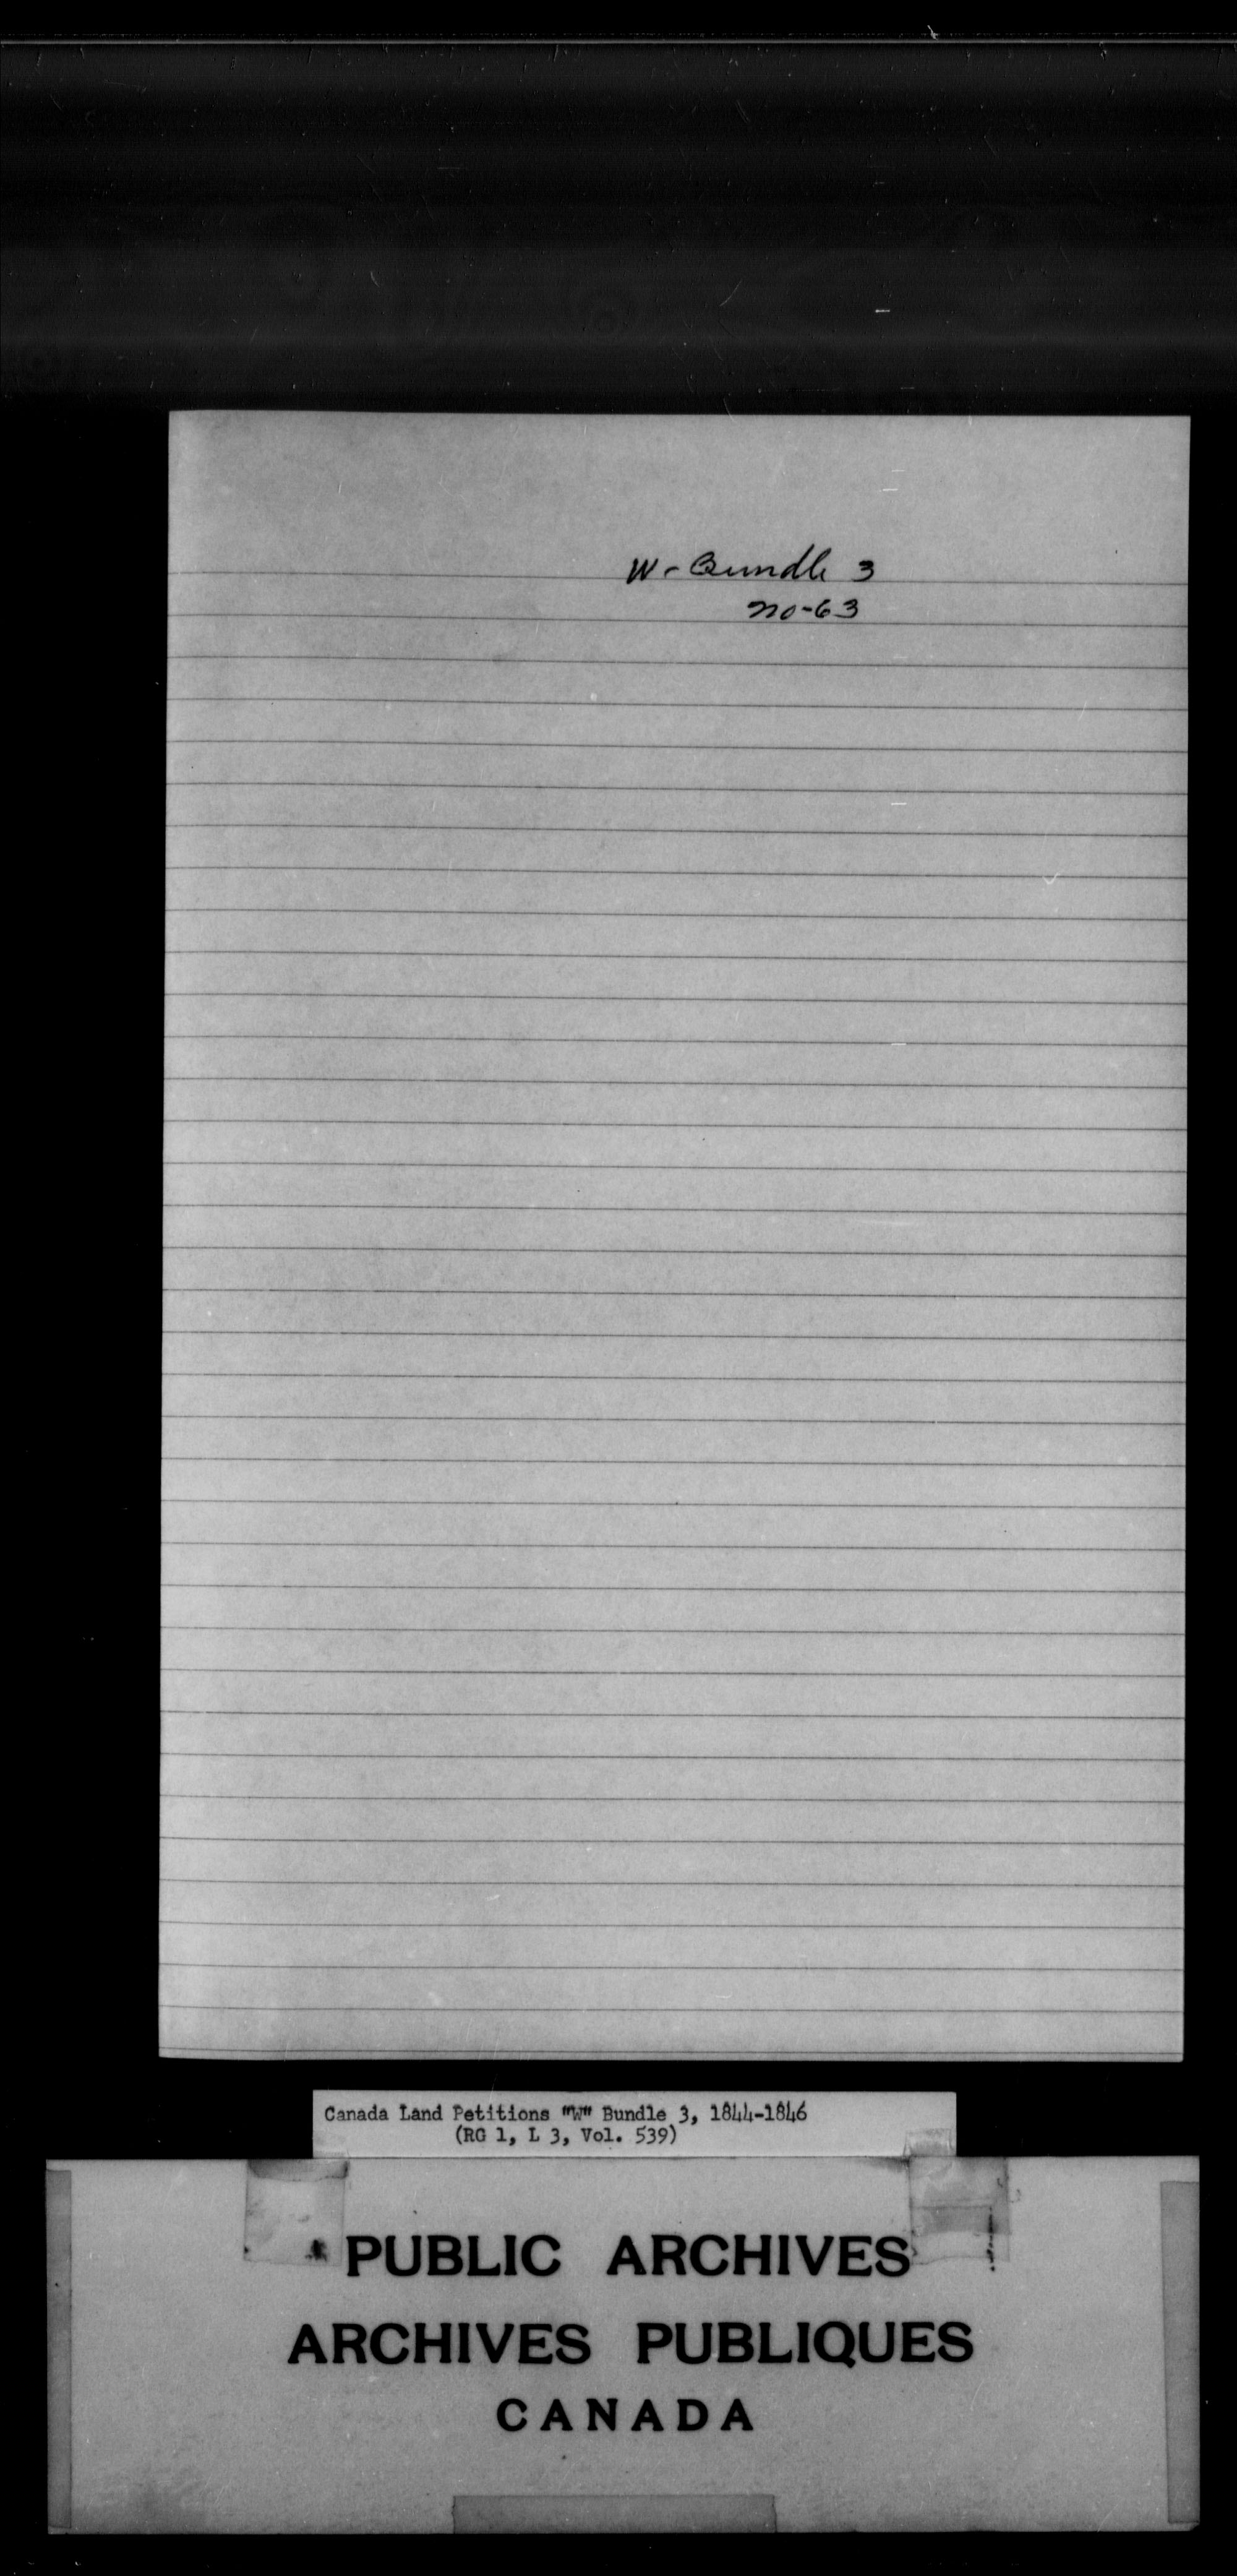 Title: Upper Canada Land Petitions (1763-1865) - Mikan Number: 205131 - Microform: c-2962